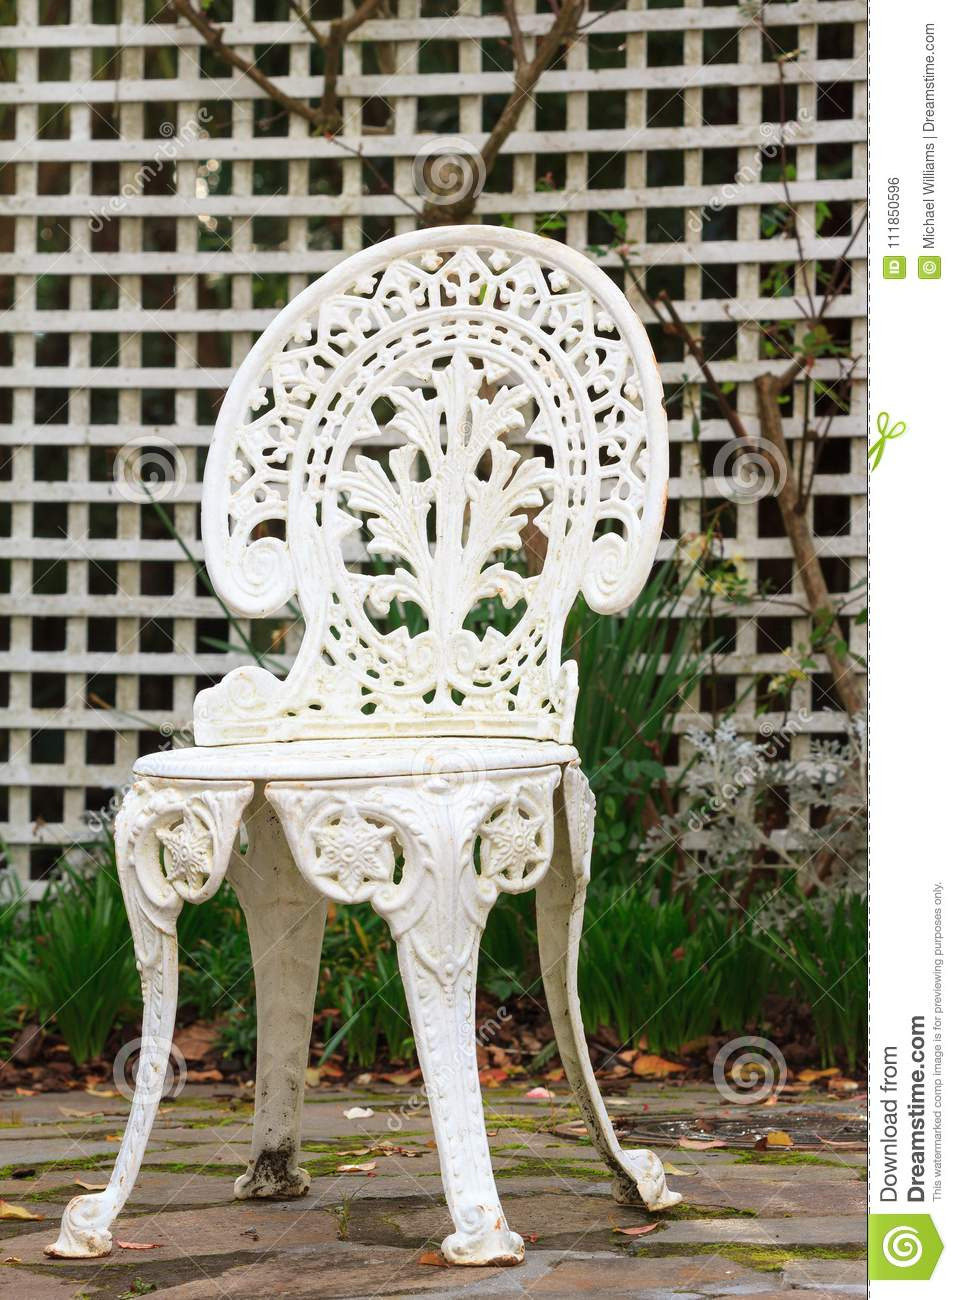 retro white metal garden chair trellis background antique style outdoor sitting courtyard filling